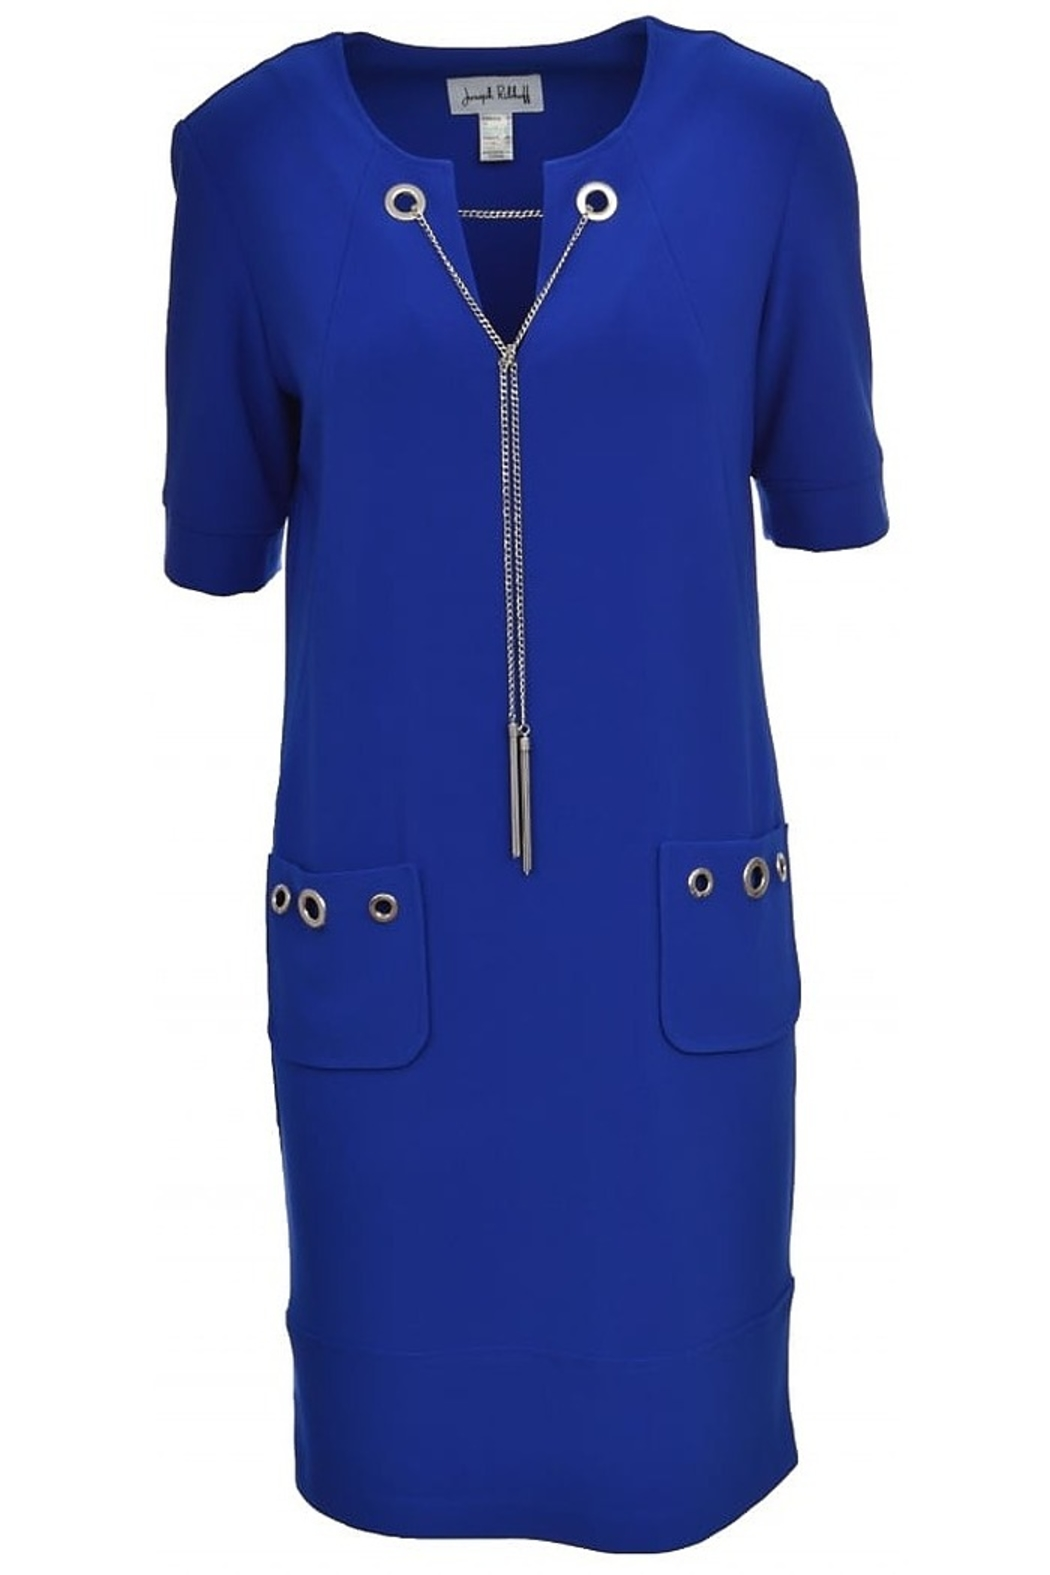 Joseph Ribkoff short sleeved royal blue dress with silver details - Front Full Image